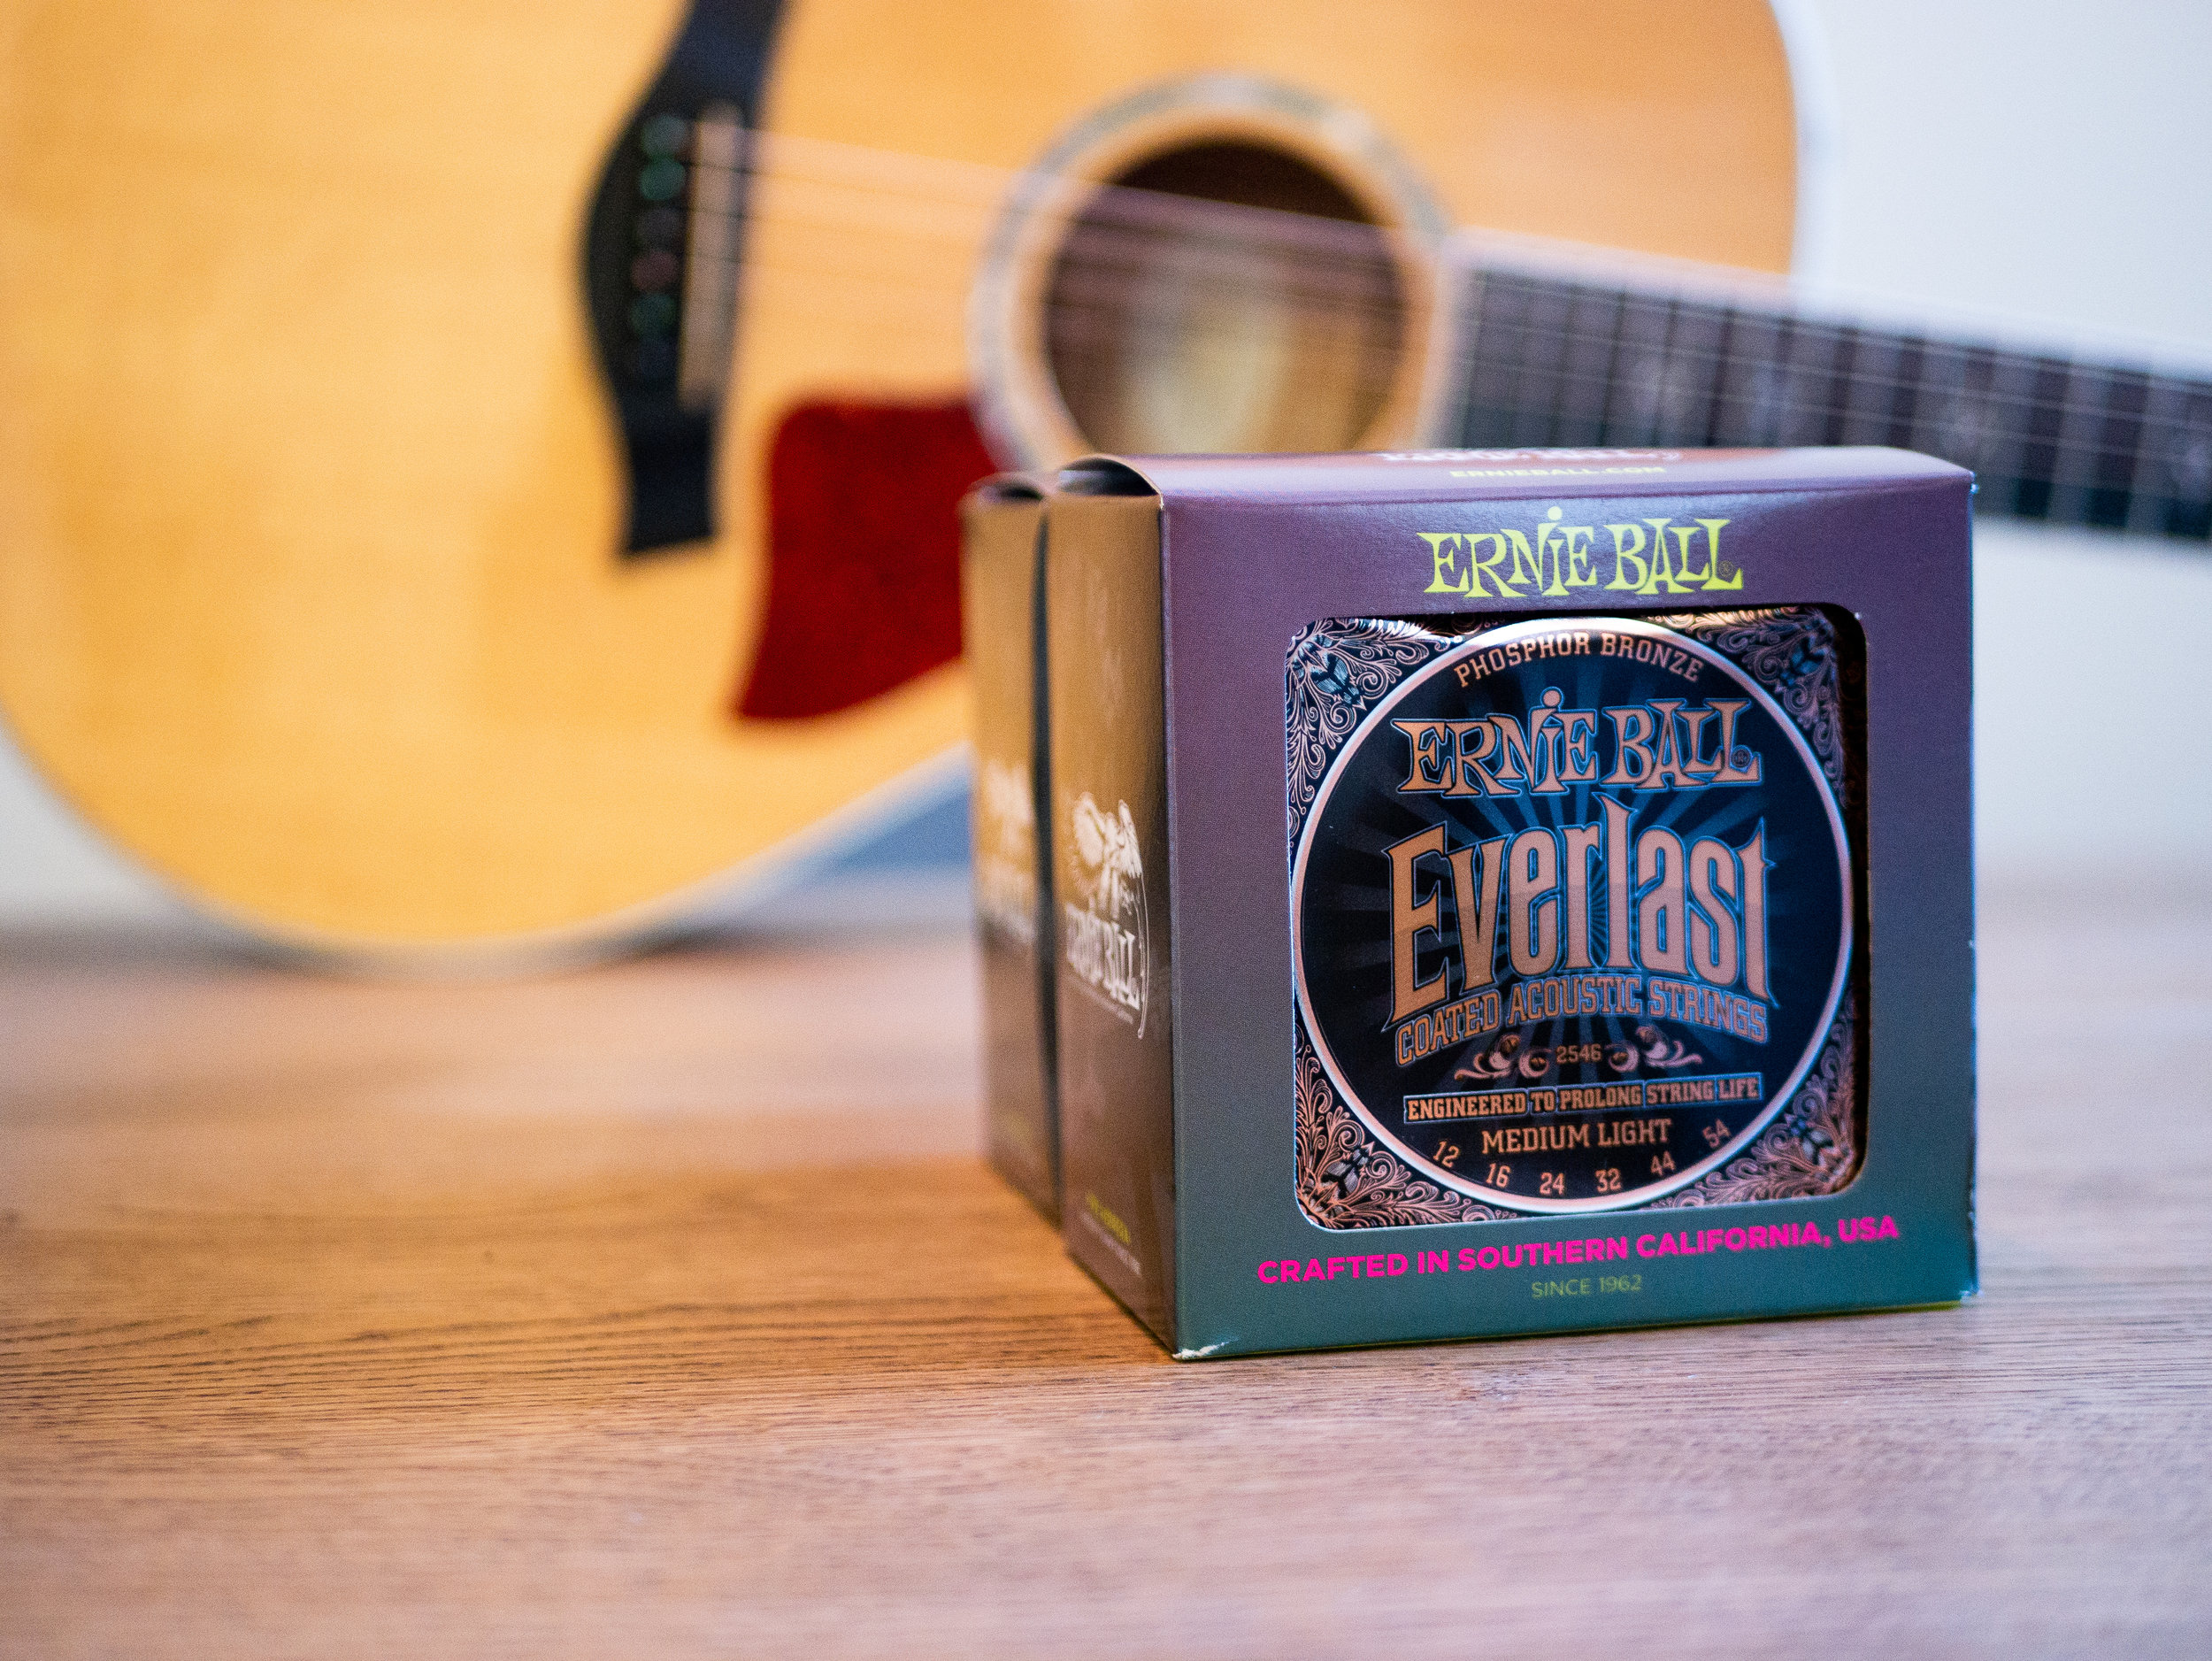 Ernie Ball - Moses uses Ernie Ball's Everlast Phosphor Bronze 12-54 strings on his Taylor 612ce because of their rich, warm tone and superior coating technology. The smooth, natural feel of these strings are essential for Moses' unique playing style.